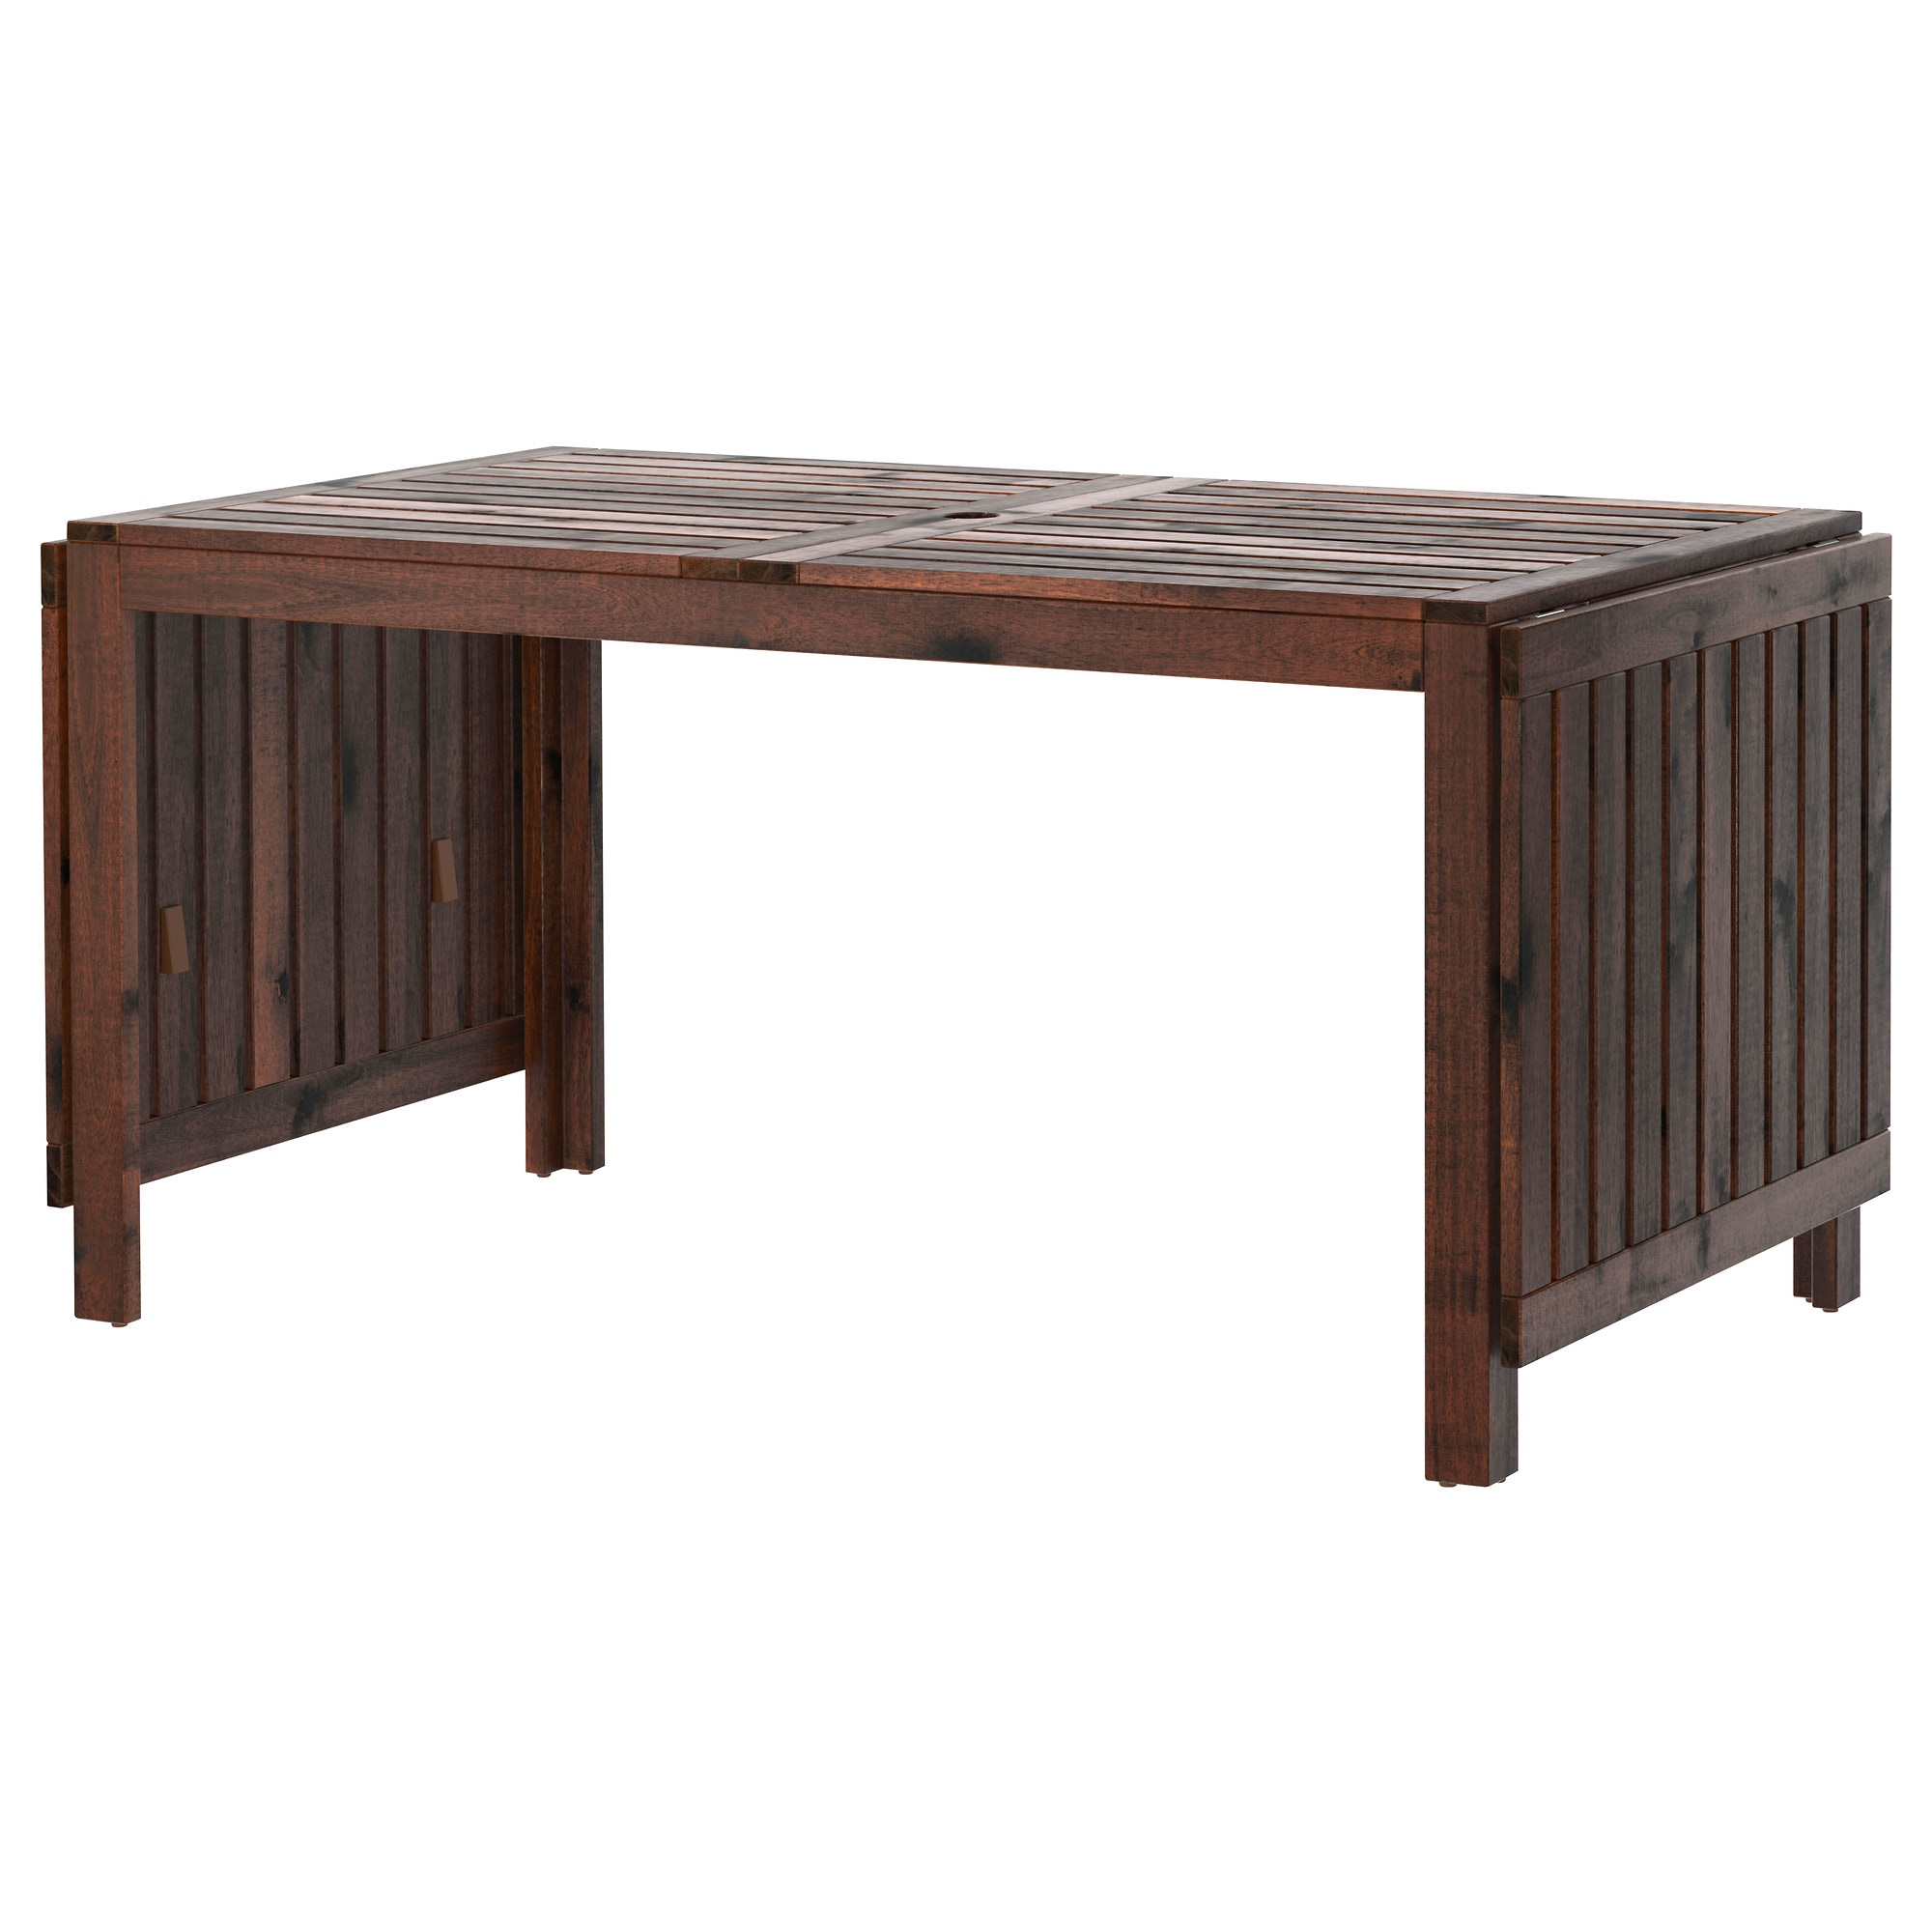 a pplara drop leaf table outdoor ikea